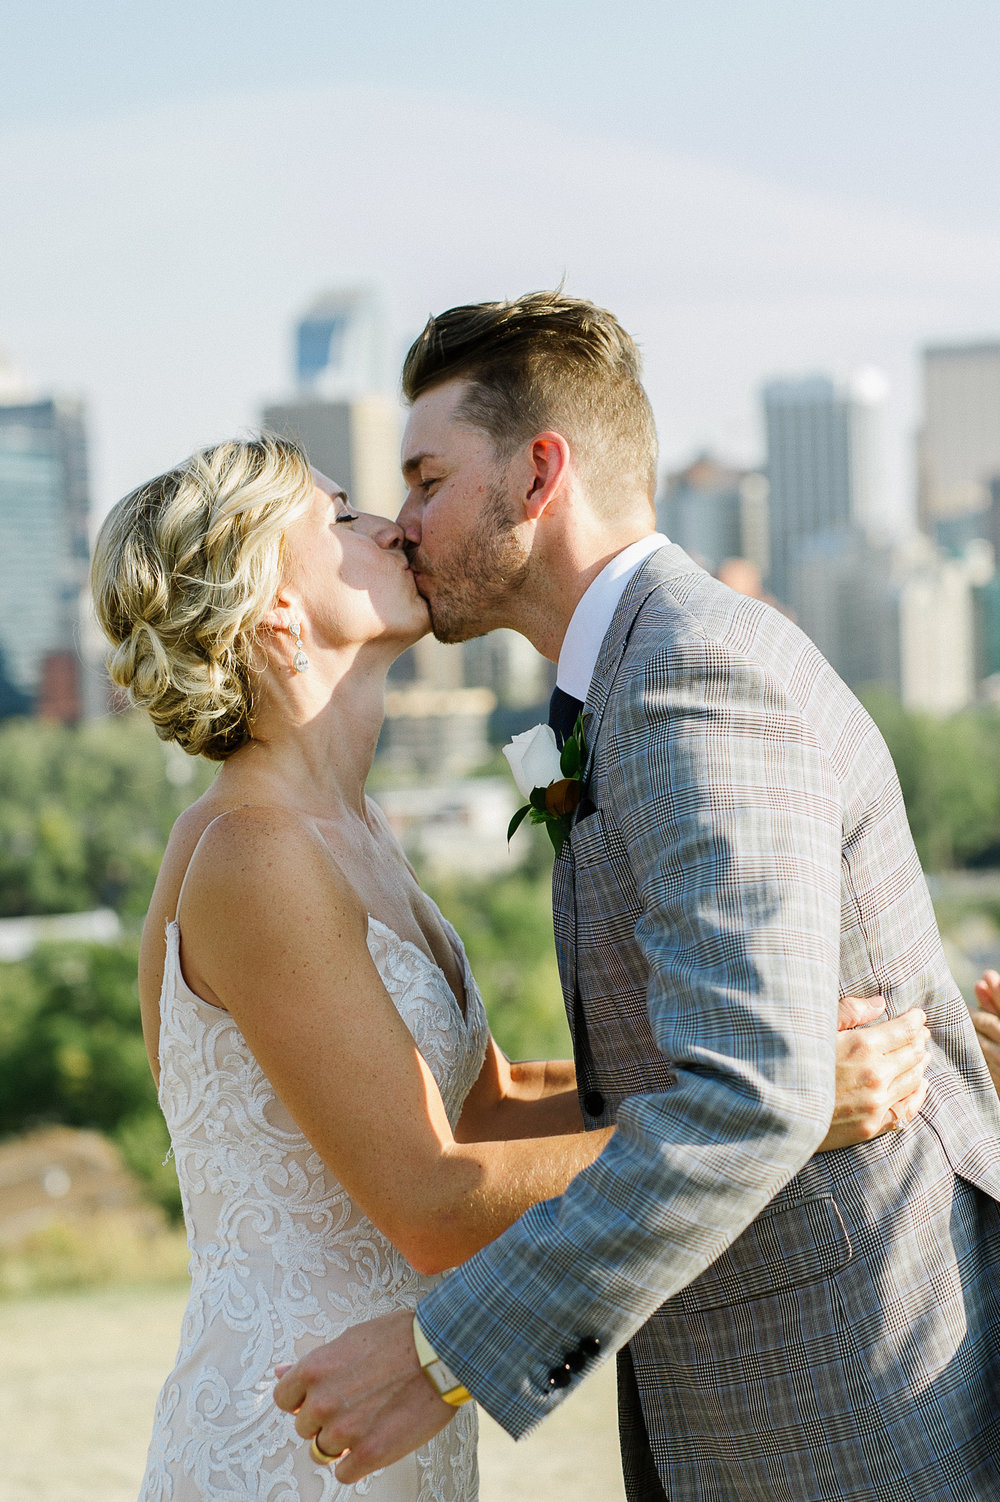 Calgary_Wedding_Photography_Melanie_Jeremy_Elopement_2017 0100.jpg